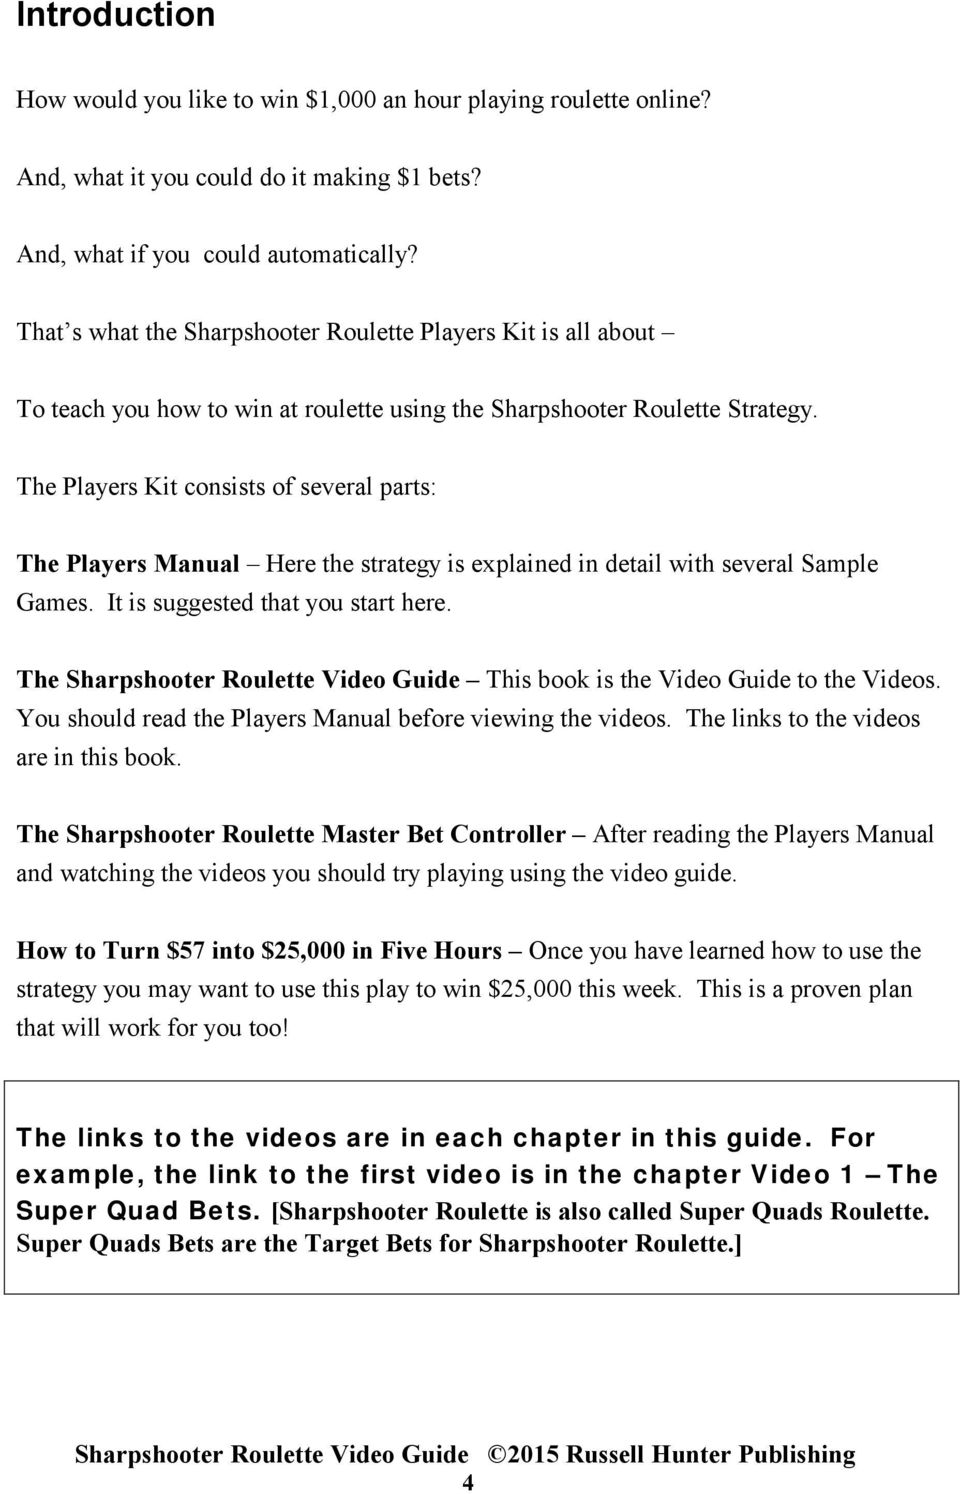 The Players Kit consists of several parts: The Players Manual Here the strategy is explained in detail with several Sample Games. It is suggested that you start here.